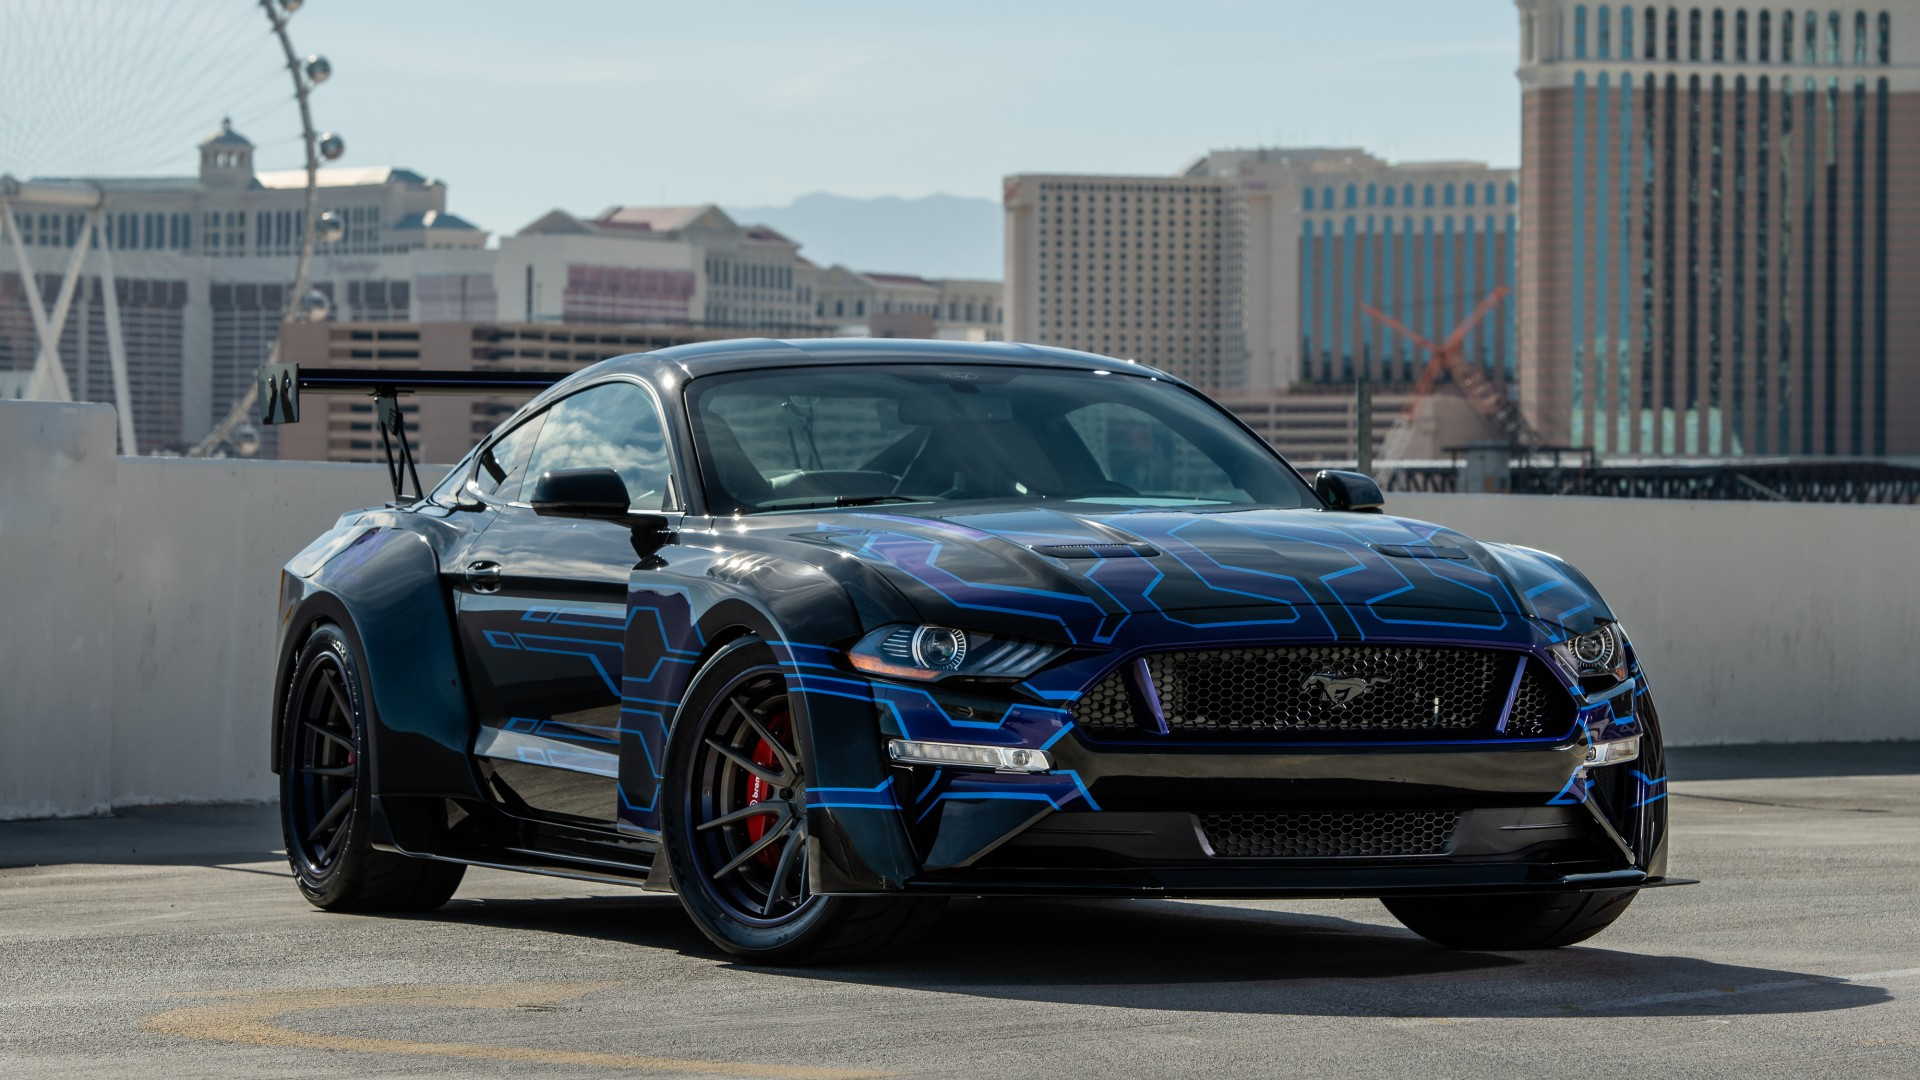 4k mustang wide body auto sports racing road widebody hd galpin tires wallpapers rims gt ford ultra 1080 1366 sema